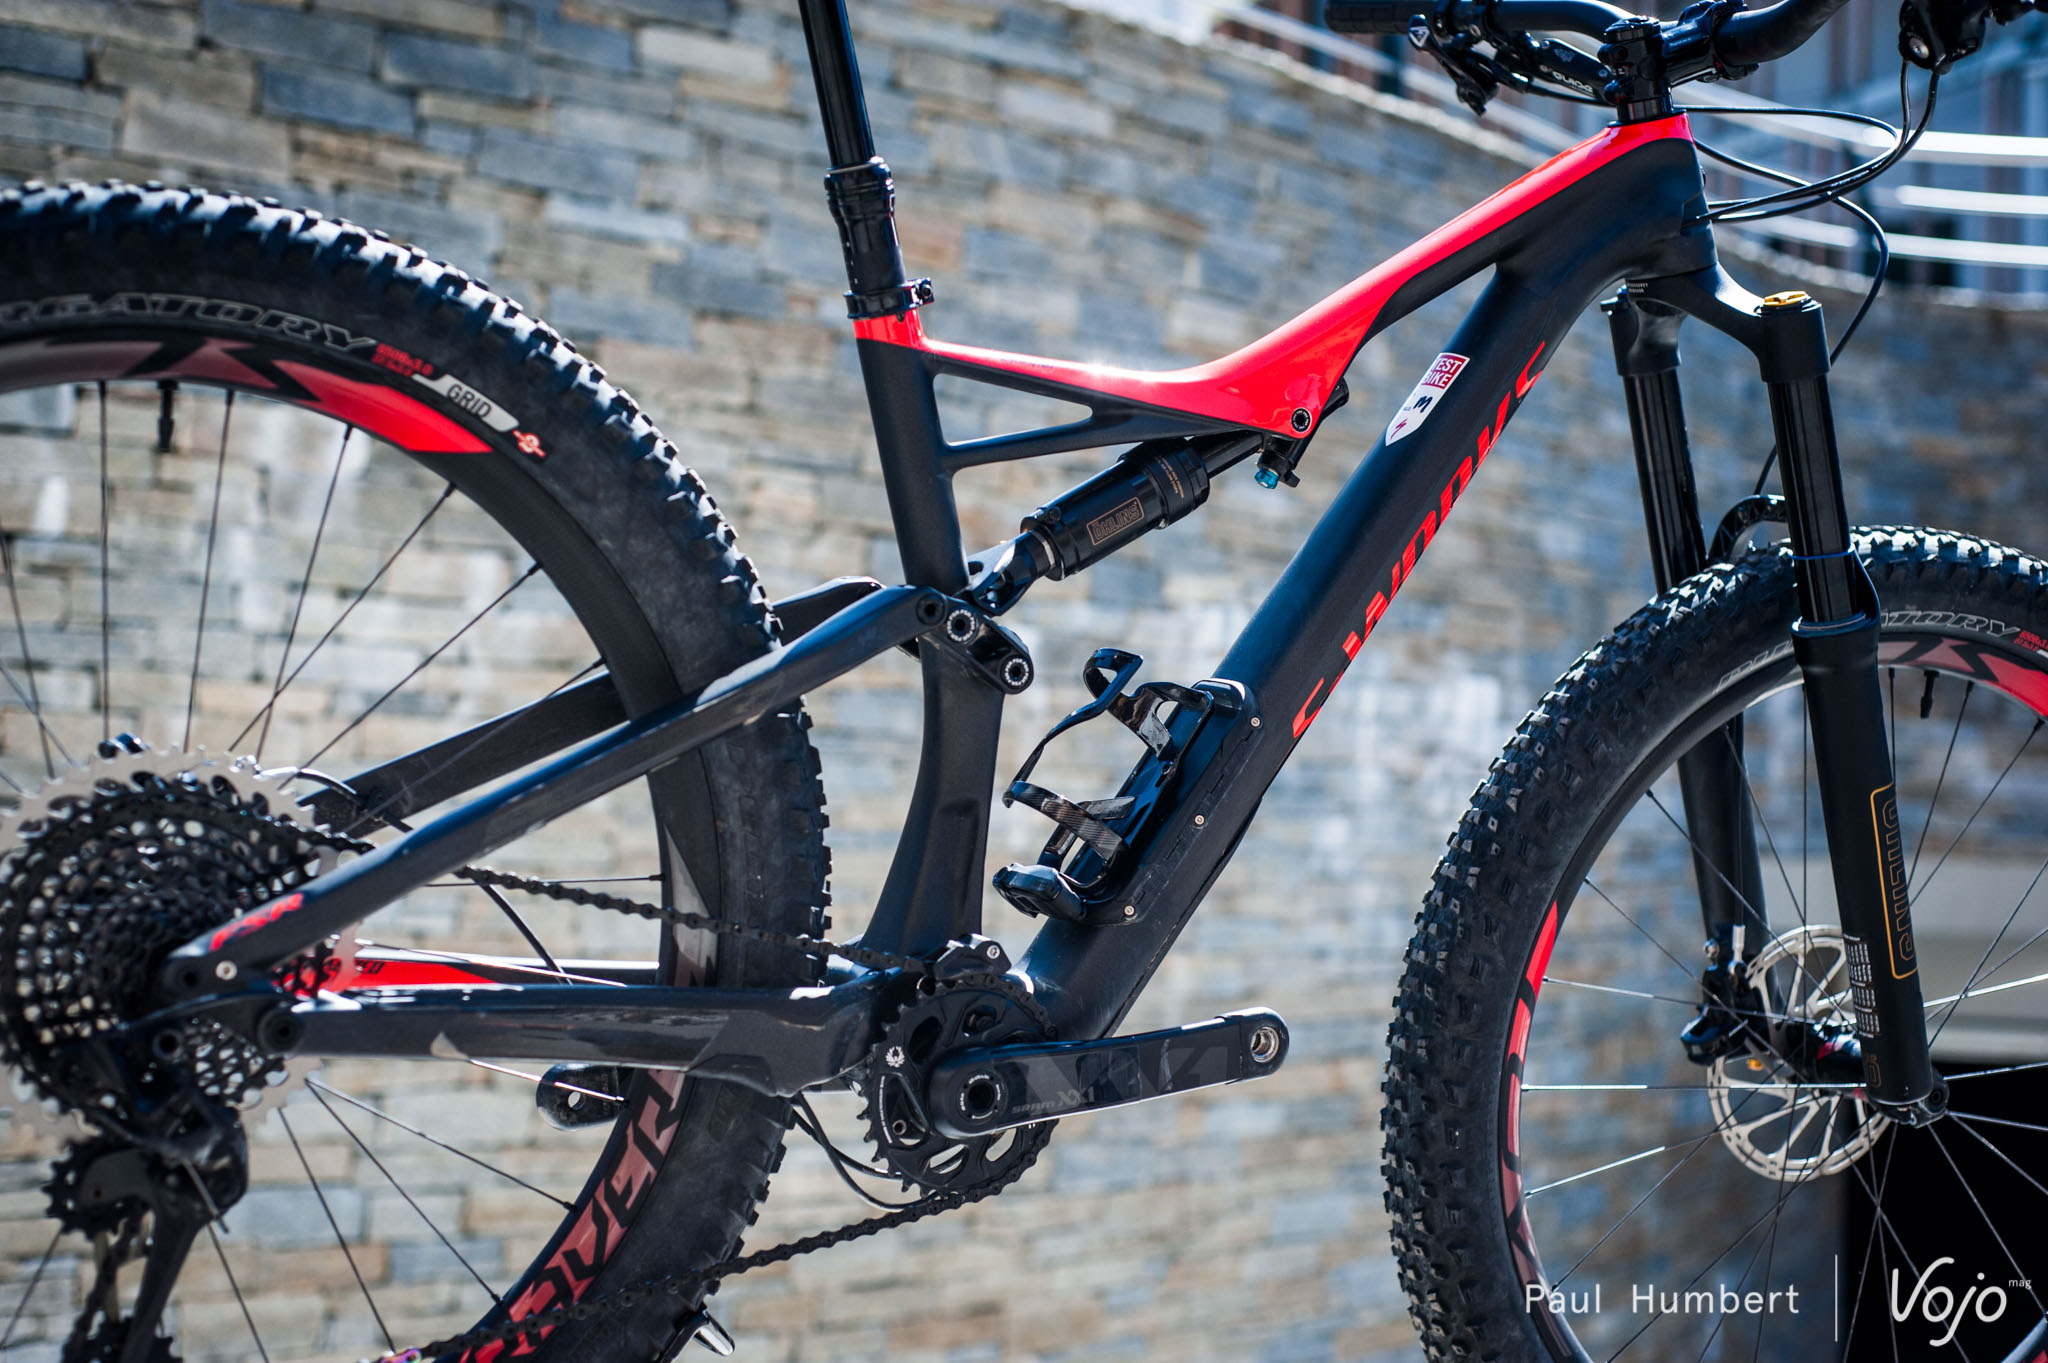 specialized-2016-paul-humbert-21